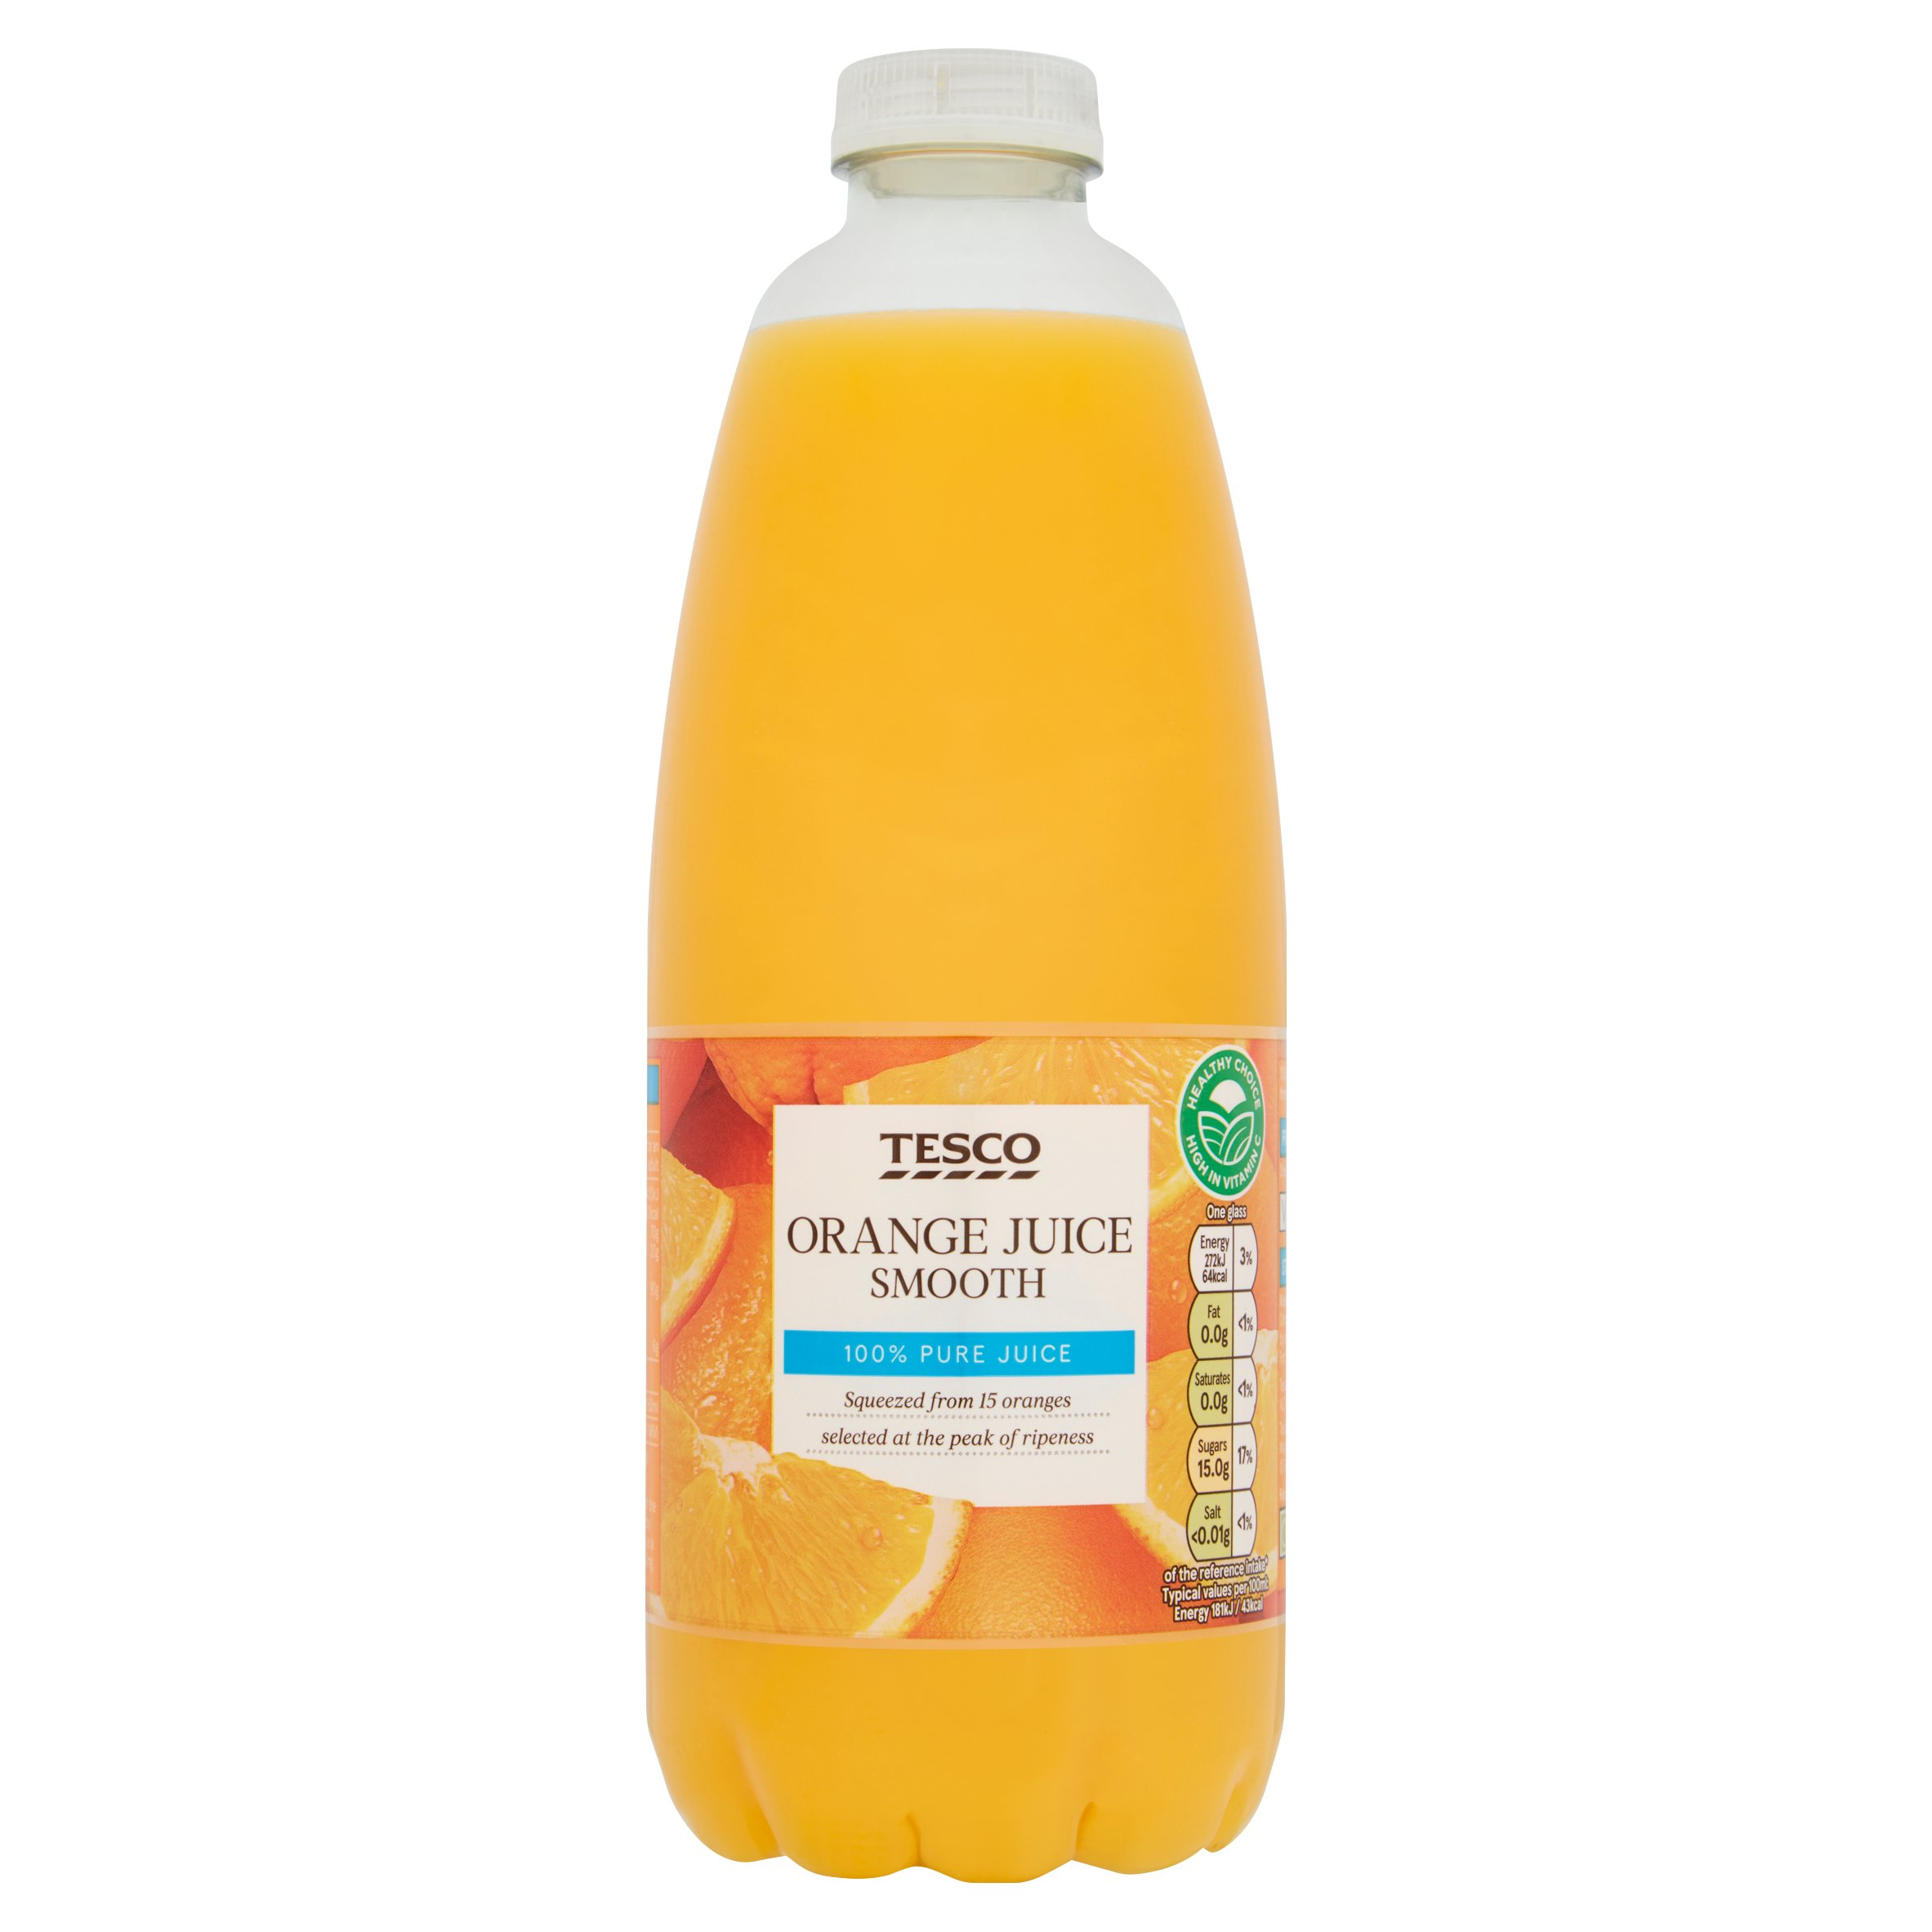 Tesco 100% Pure Squeezed Orange Juice Smooth Not From Concentrate 1L